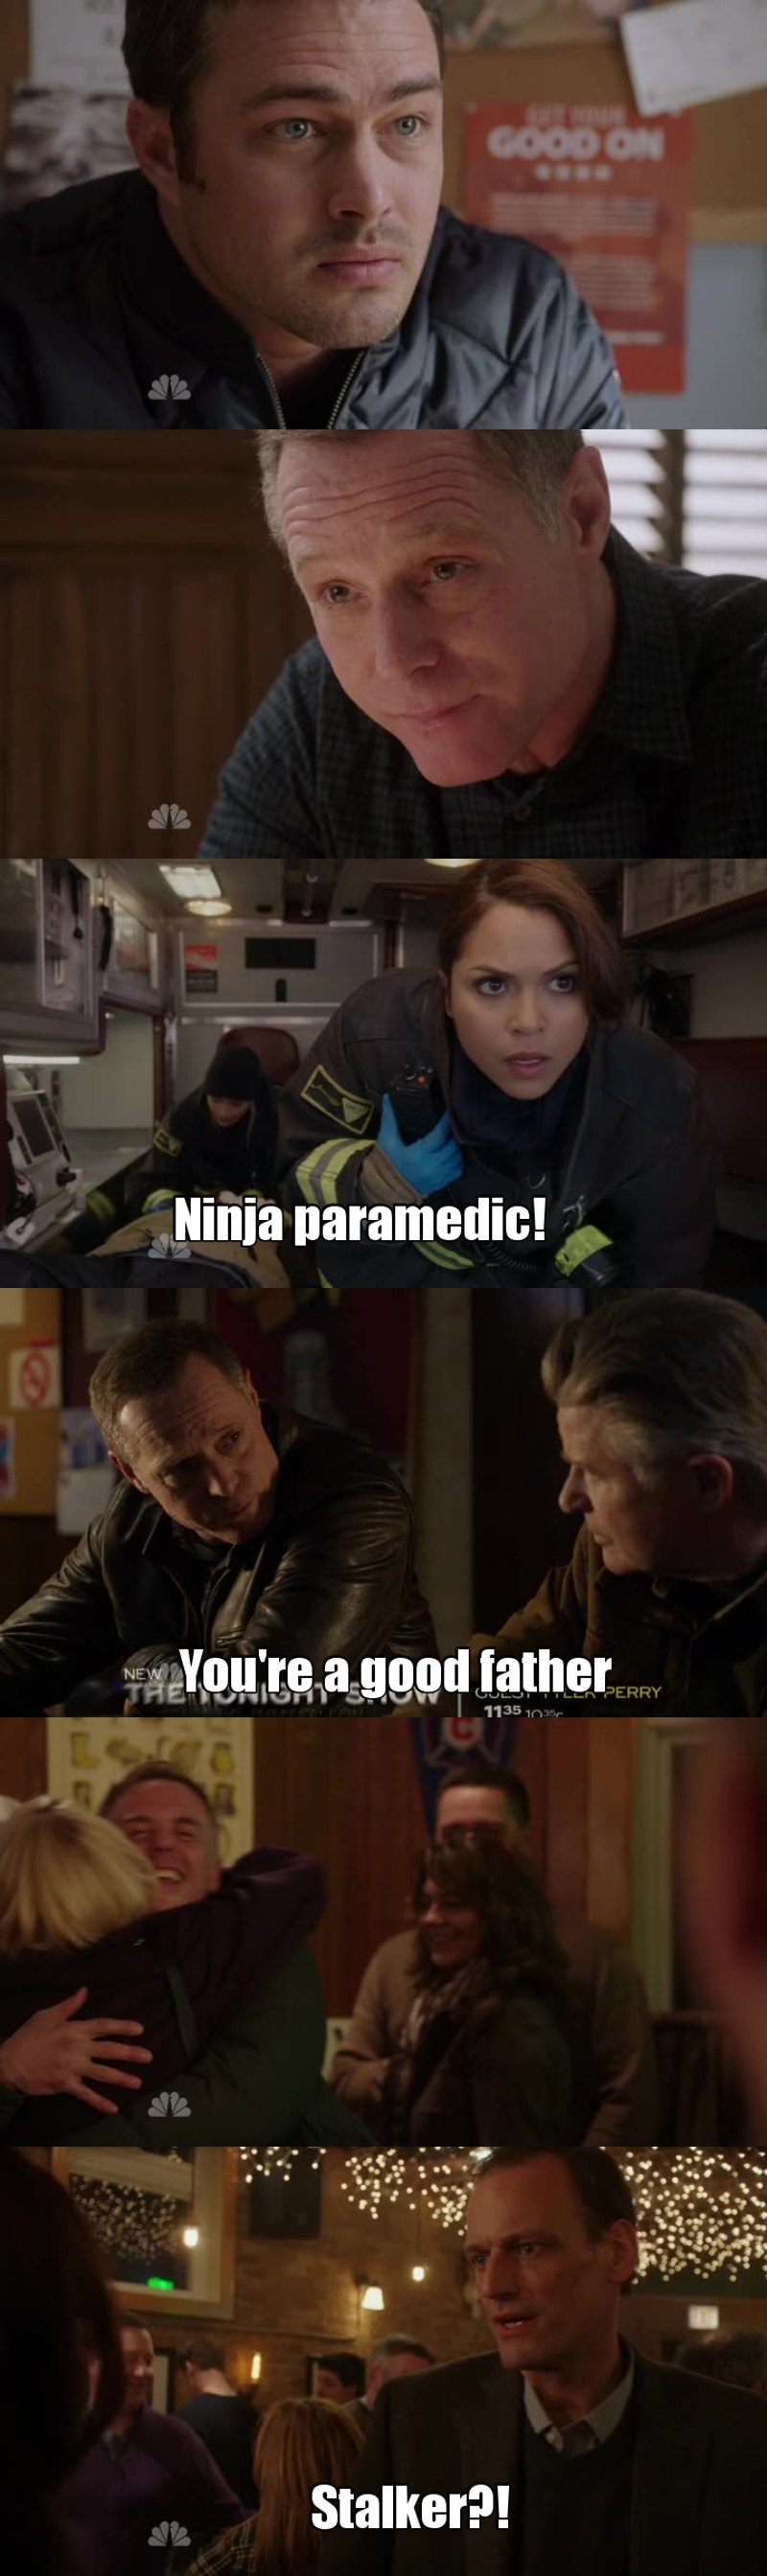 Such a good and strong episode! All my favorites characters were in this episode: Voight, Lindsay, Severide, Benny. When Voight said to Benny that he's a good father I don't think Voight really know how he raised his kids, but if Voight was in the same situation as Benny he'll do the same for his son, I remember that all started when Voight was trying to protect his own son and Casey got in the way, that's clearly the reason why he helped Benny out and for Benny is not really hard to left Chicago area for a while, he does that all the time